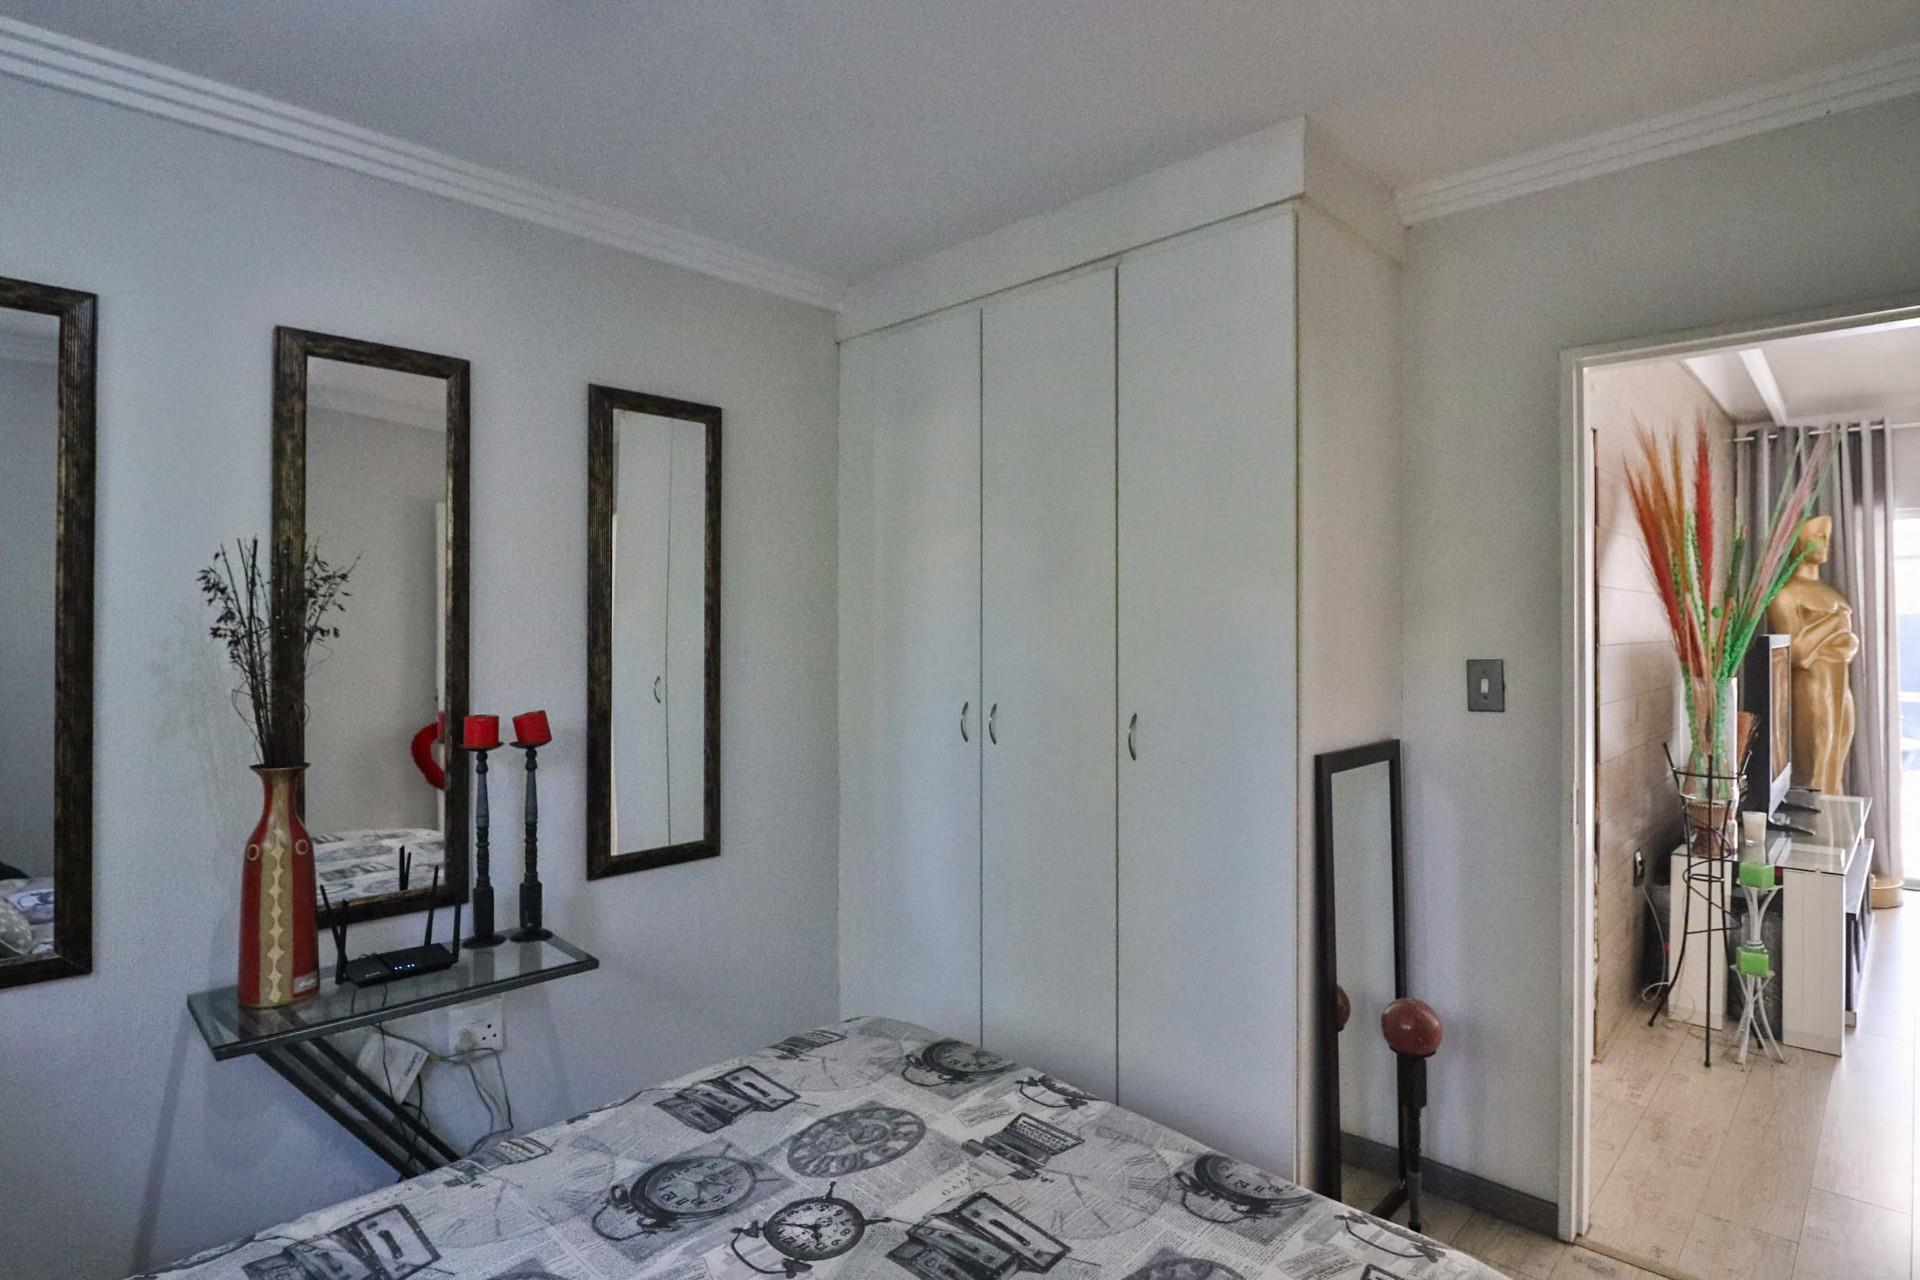 2 Bedroom Townhouse For Sale in Northgate